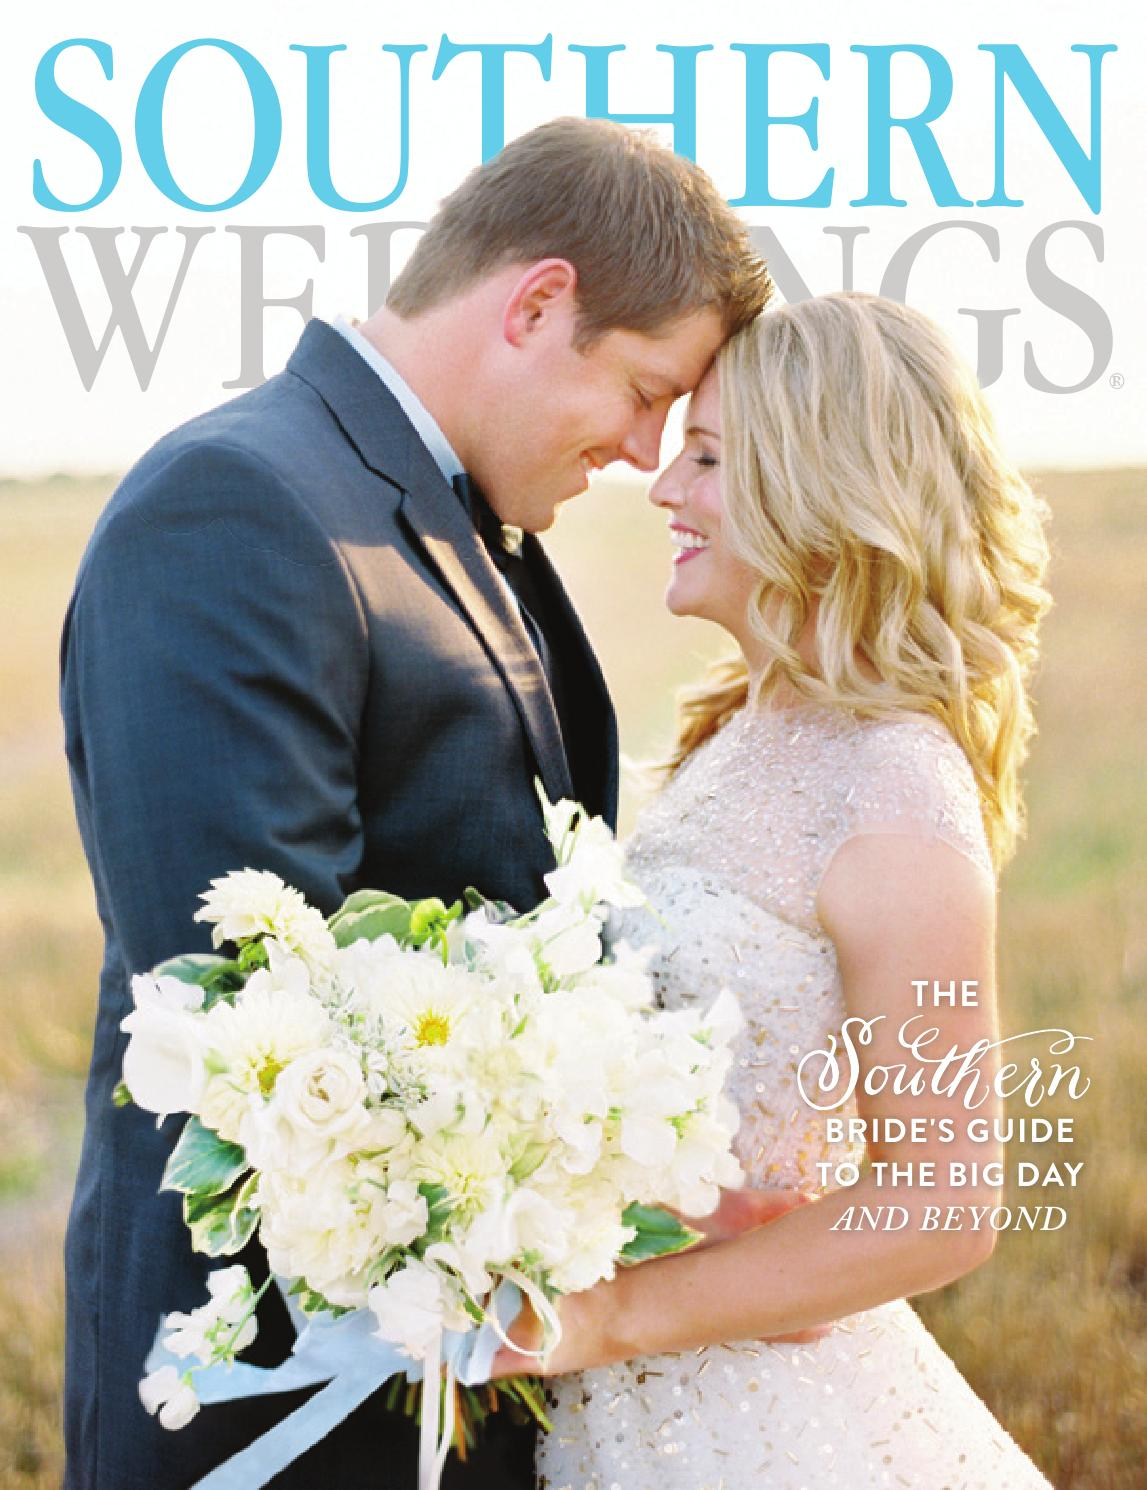 97d1c6fd2eec Southern Weddings V6 by Southern Weddings - issuu